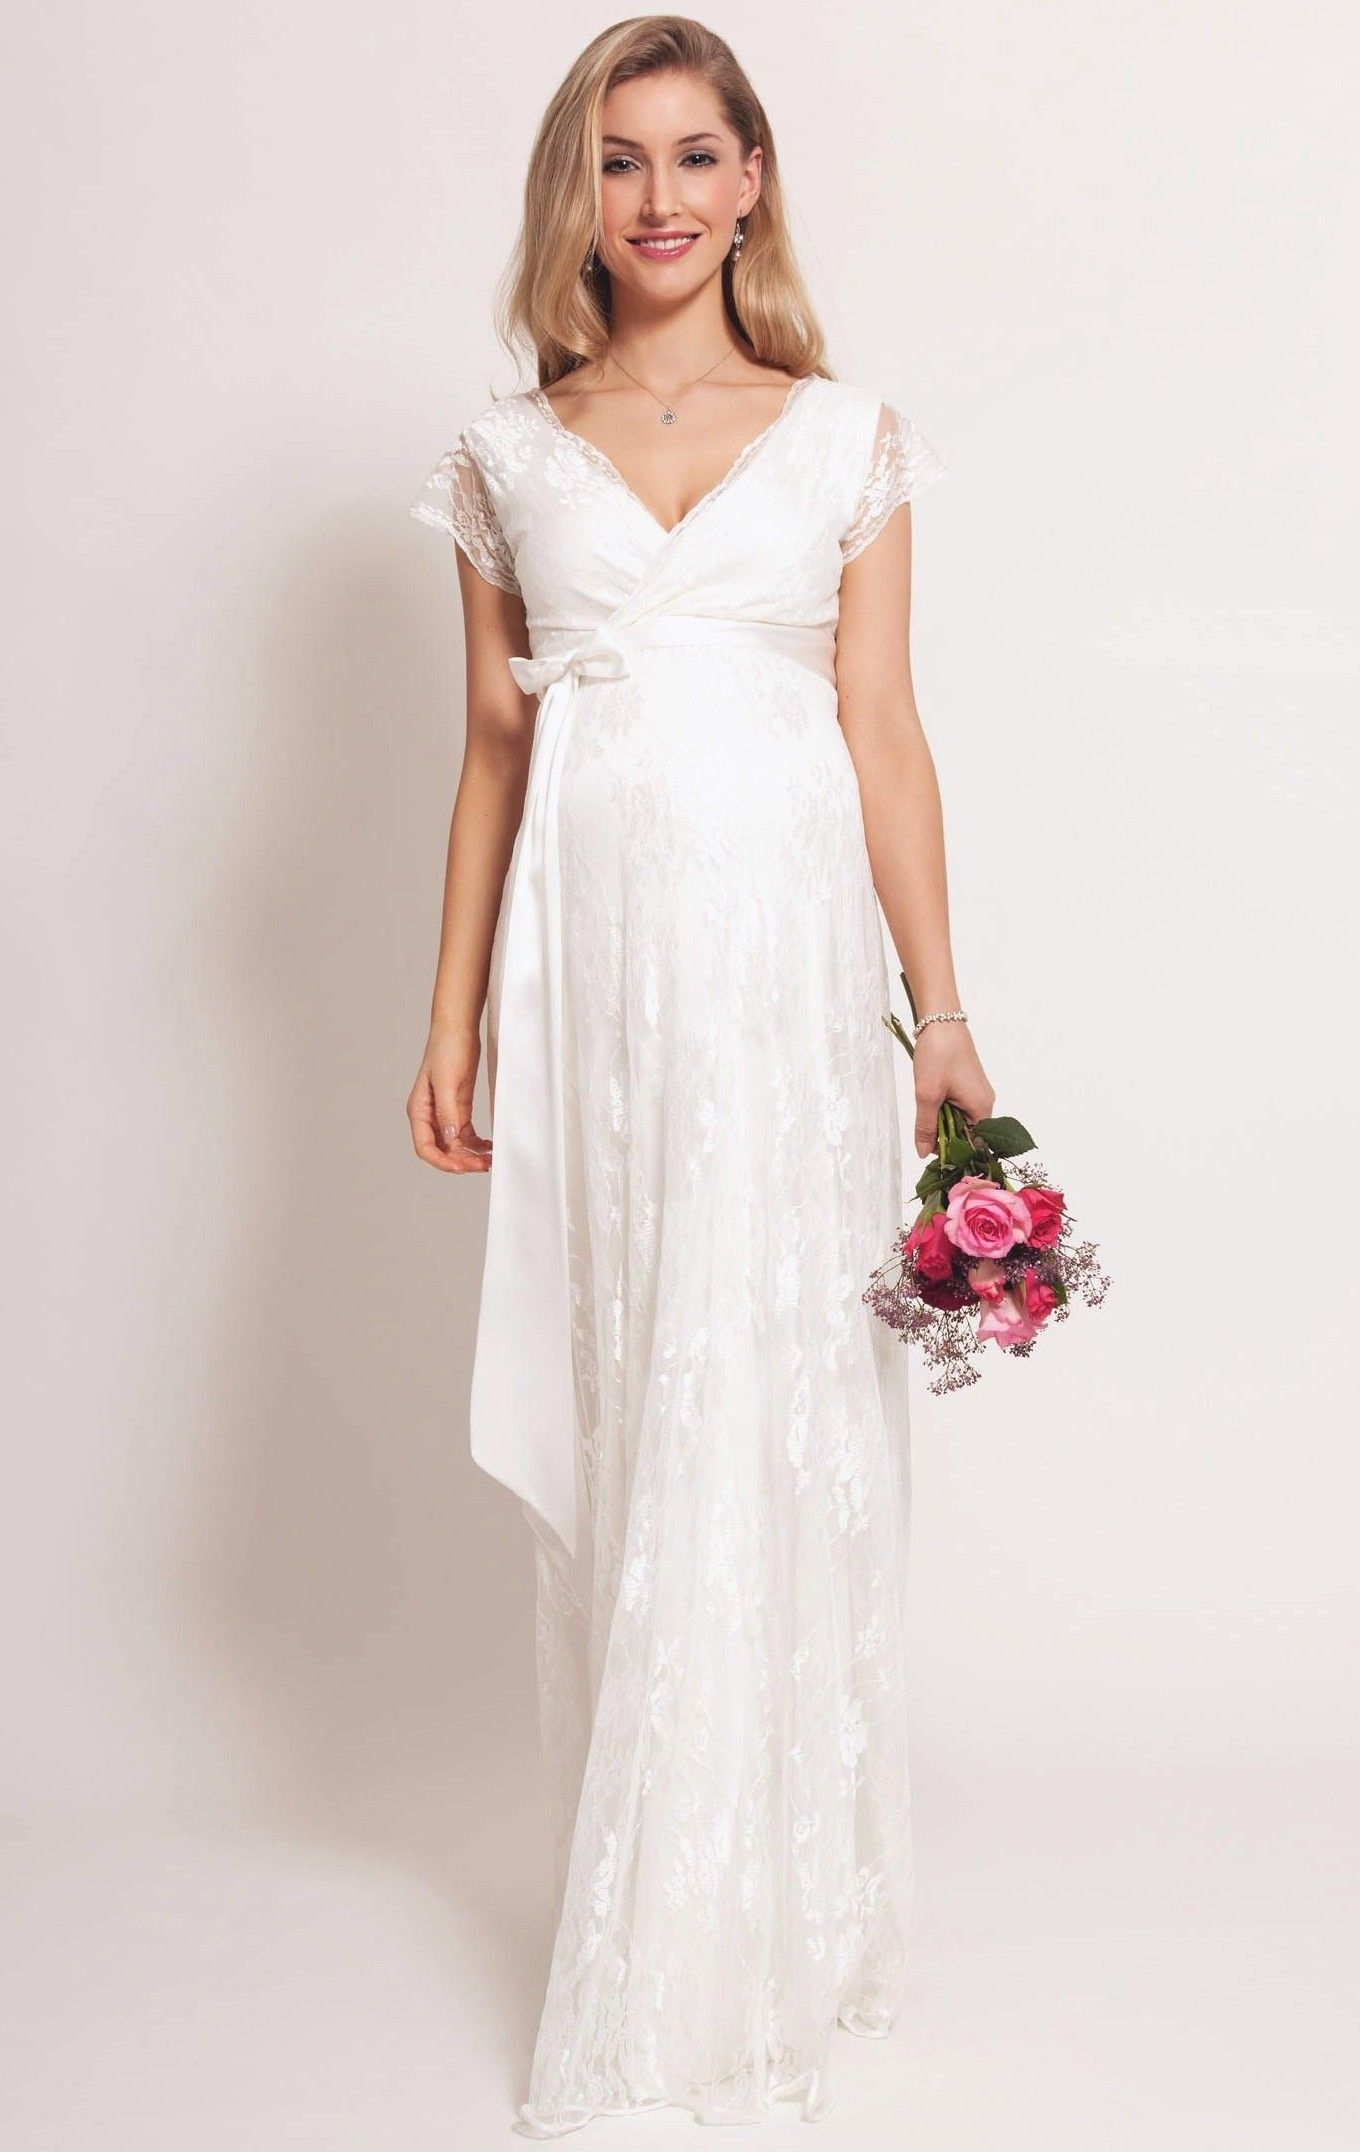 Awesome 70+ Wedding Dress for Pregnant Brides Ideas c71d516323